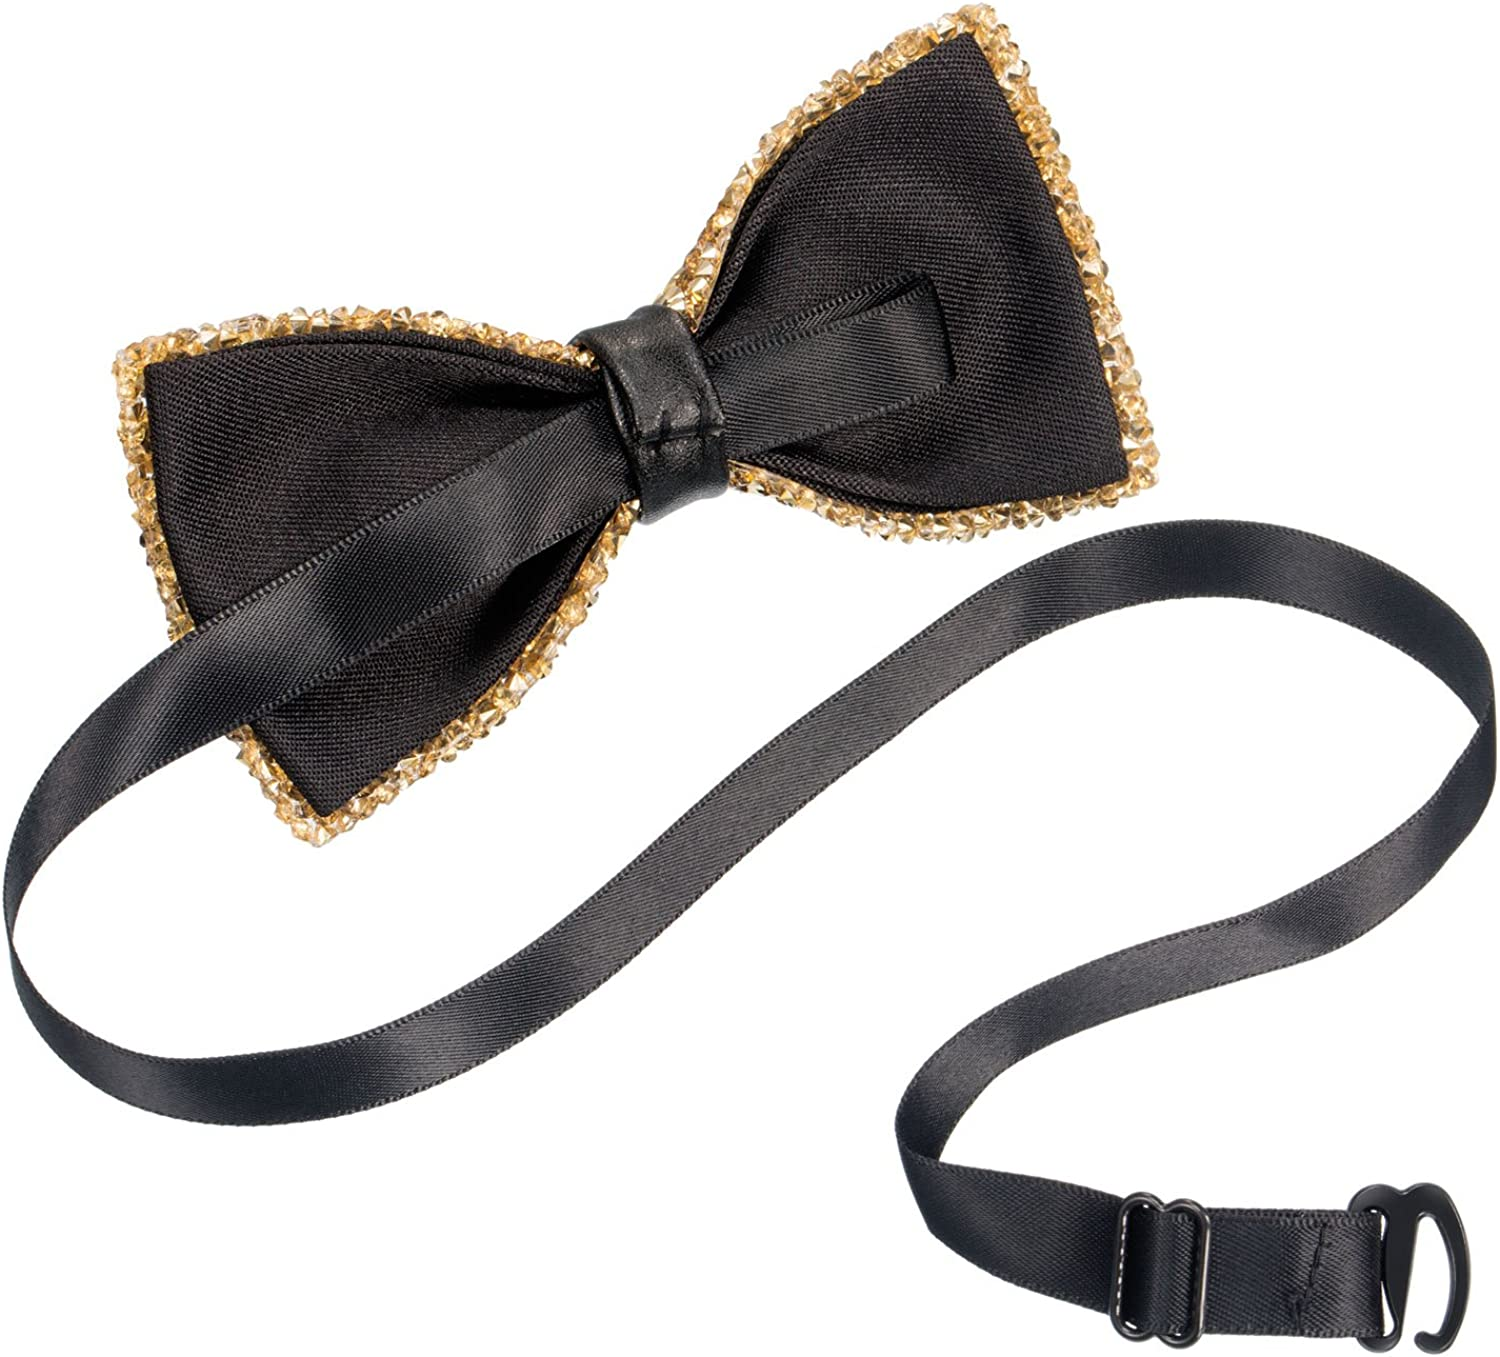 Gold and Silver Blulu 2 Pieces Rhinestone Bow Ties Party Banquet Bowties Mens Pre-tied Bow Ties for Wedding and Parties